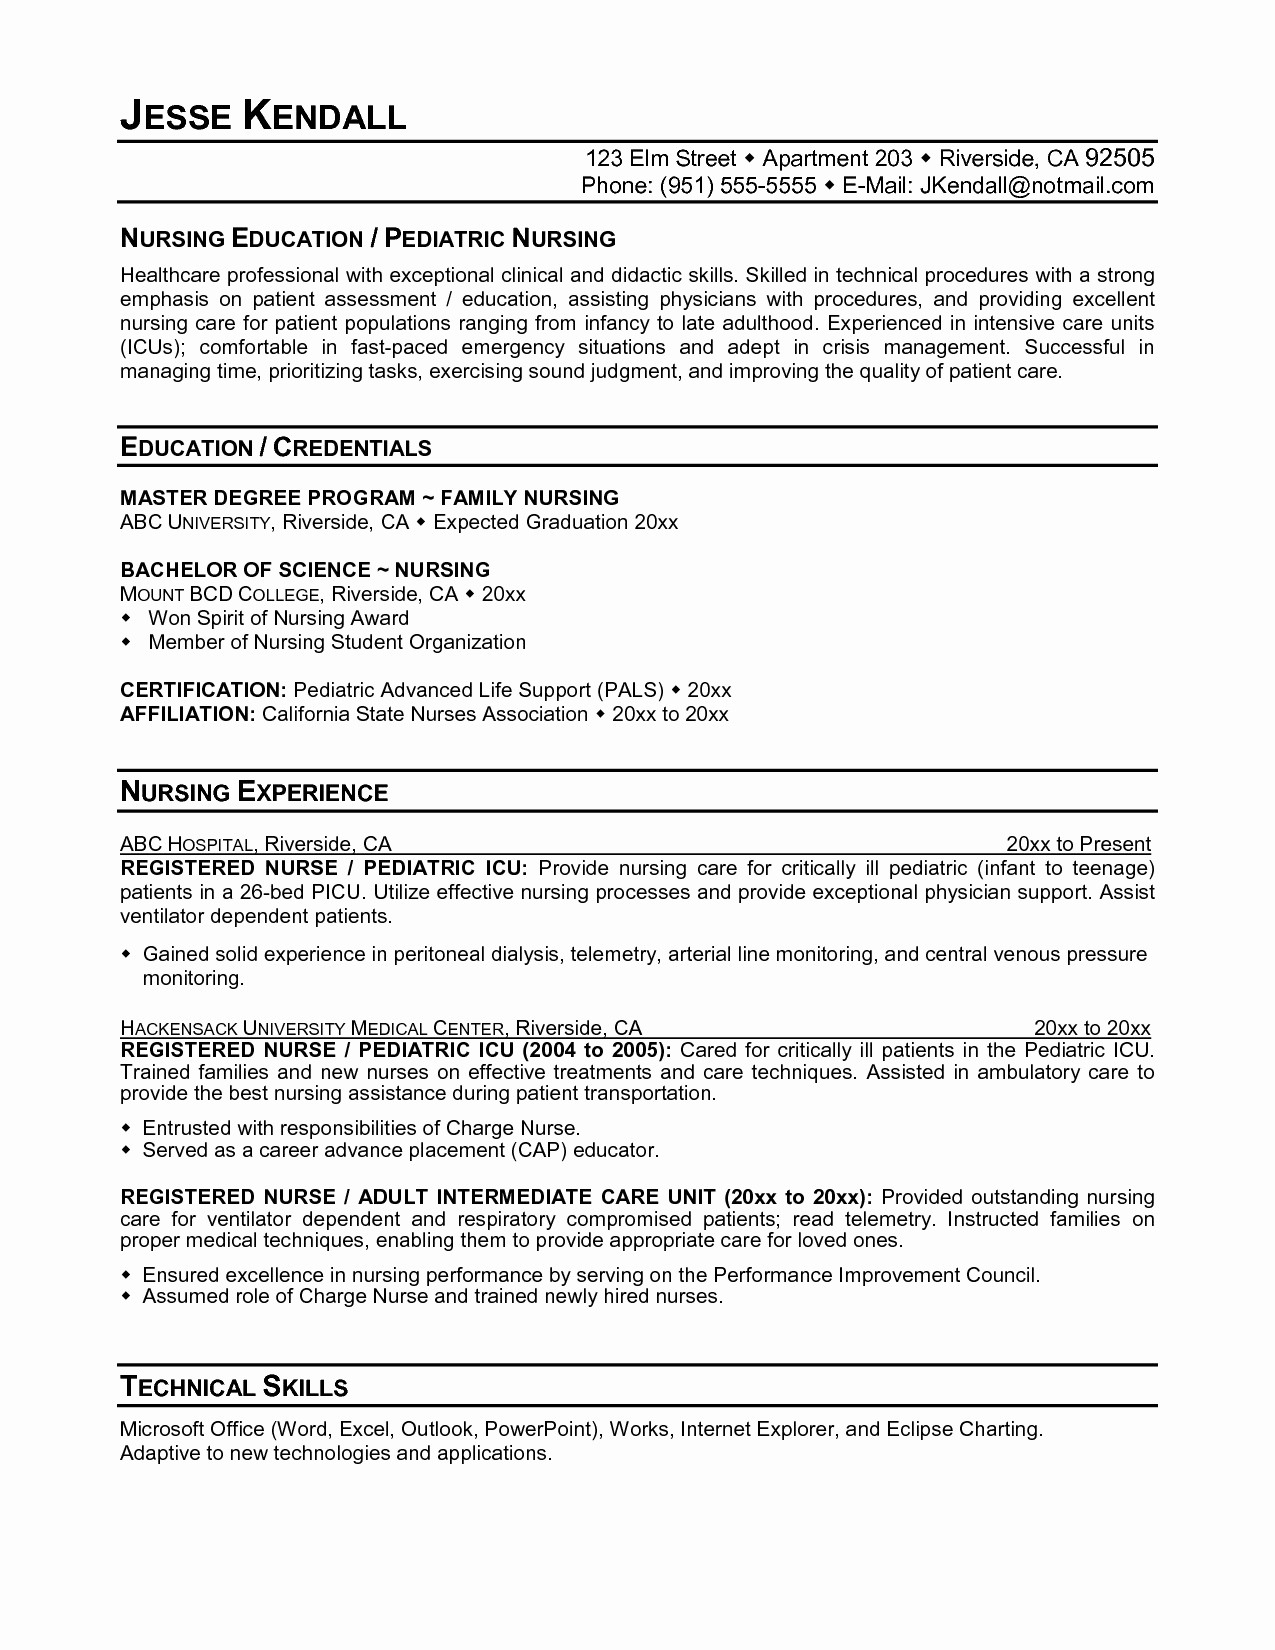 nurse resume template microsoft word Collection-Template Rn Bsn Resume Related Post 16-k